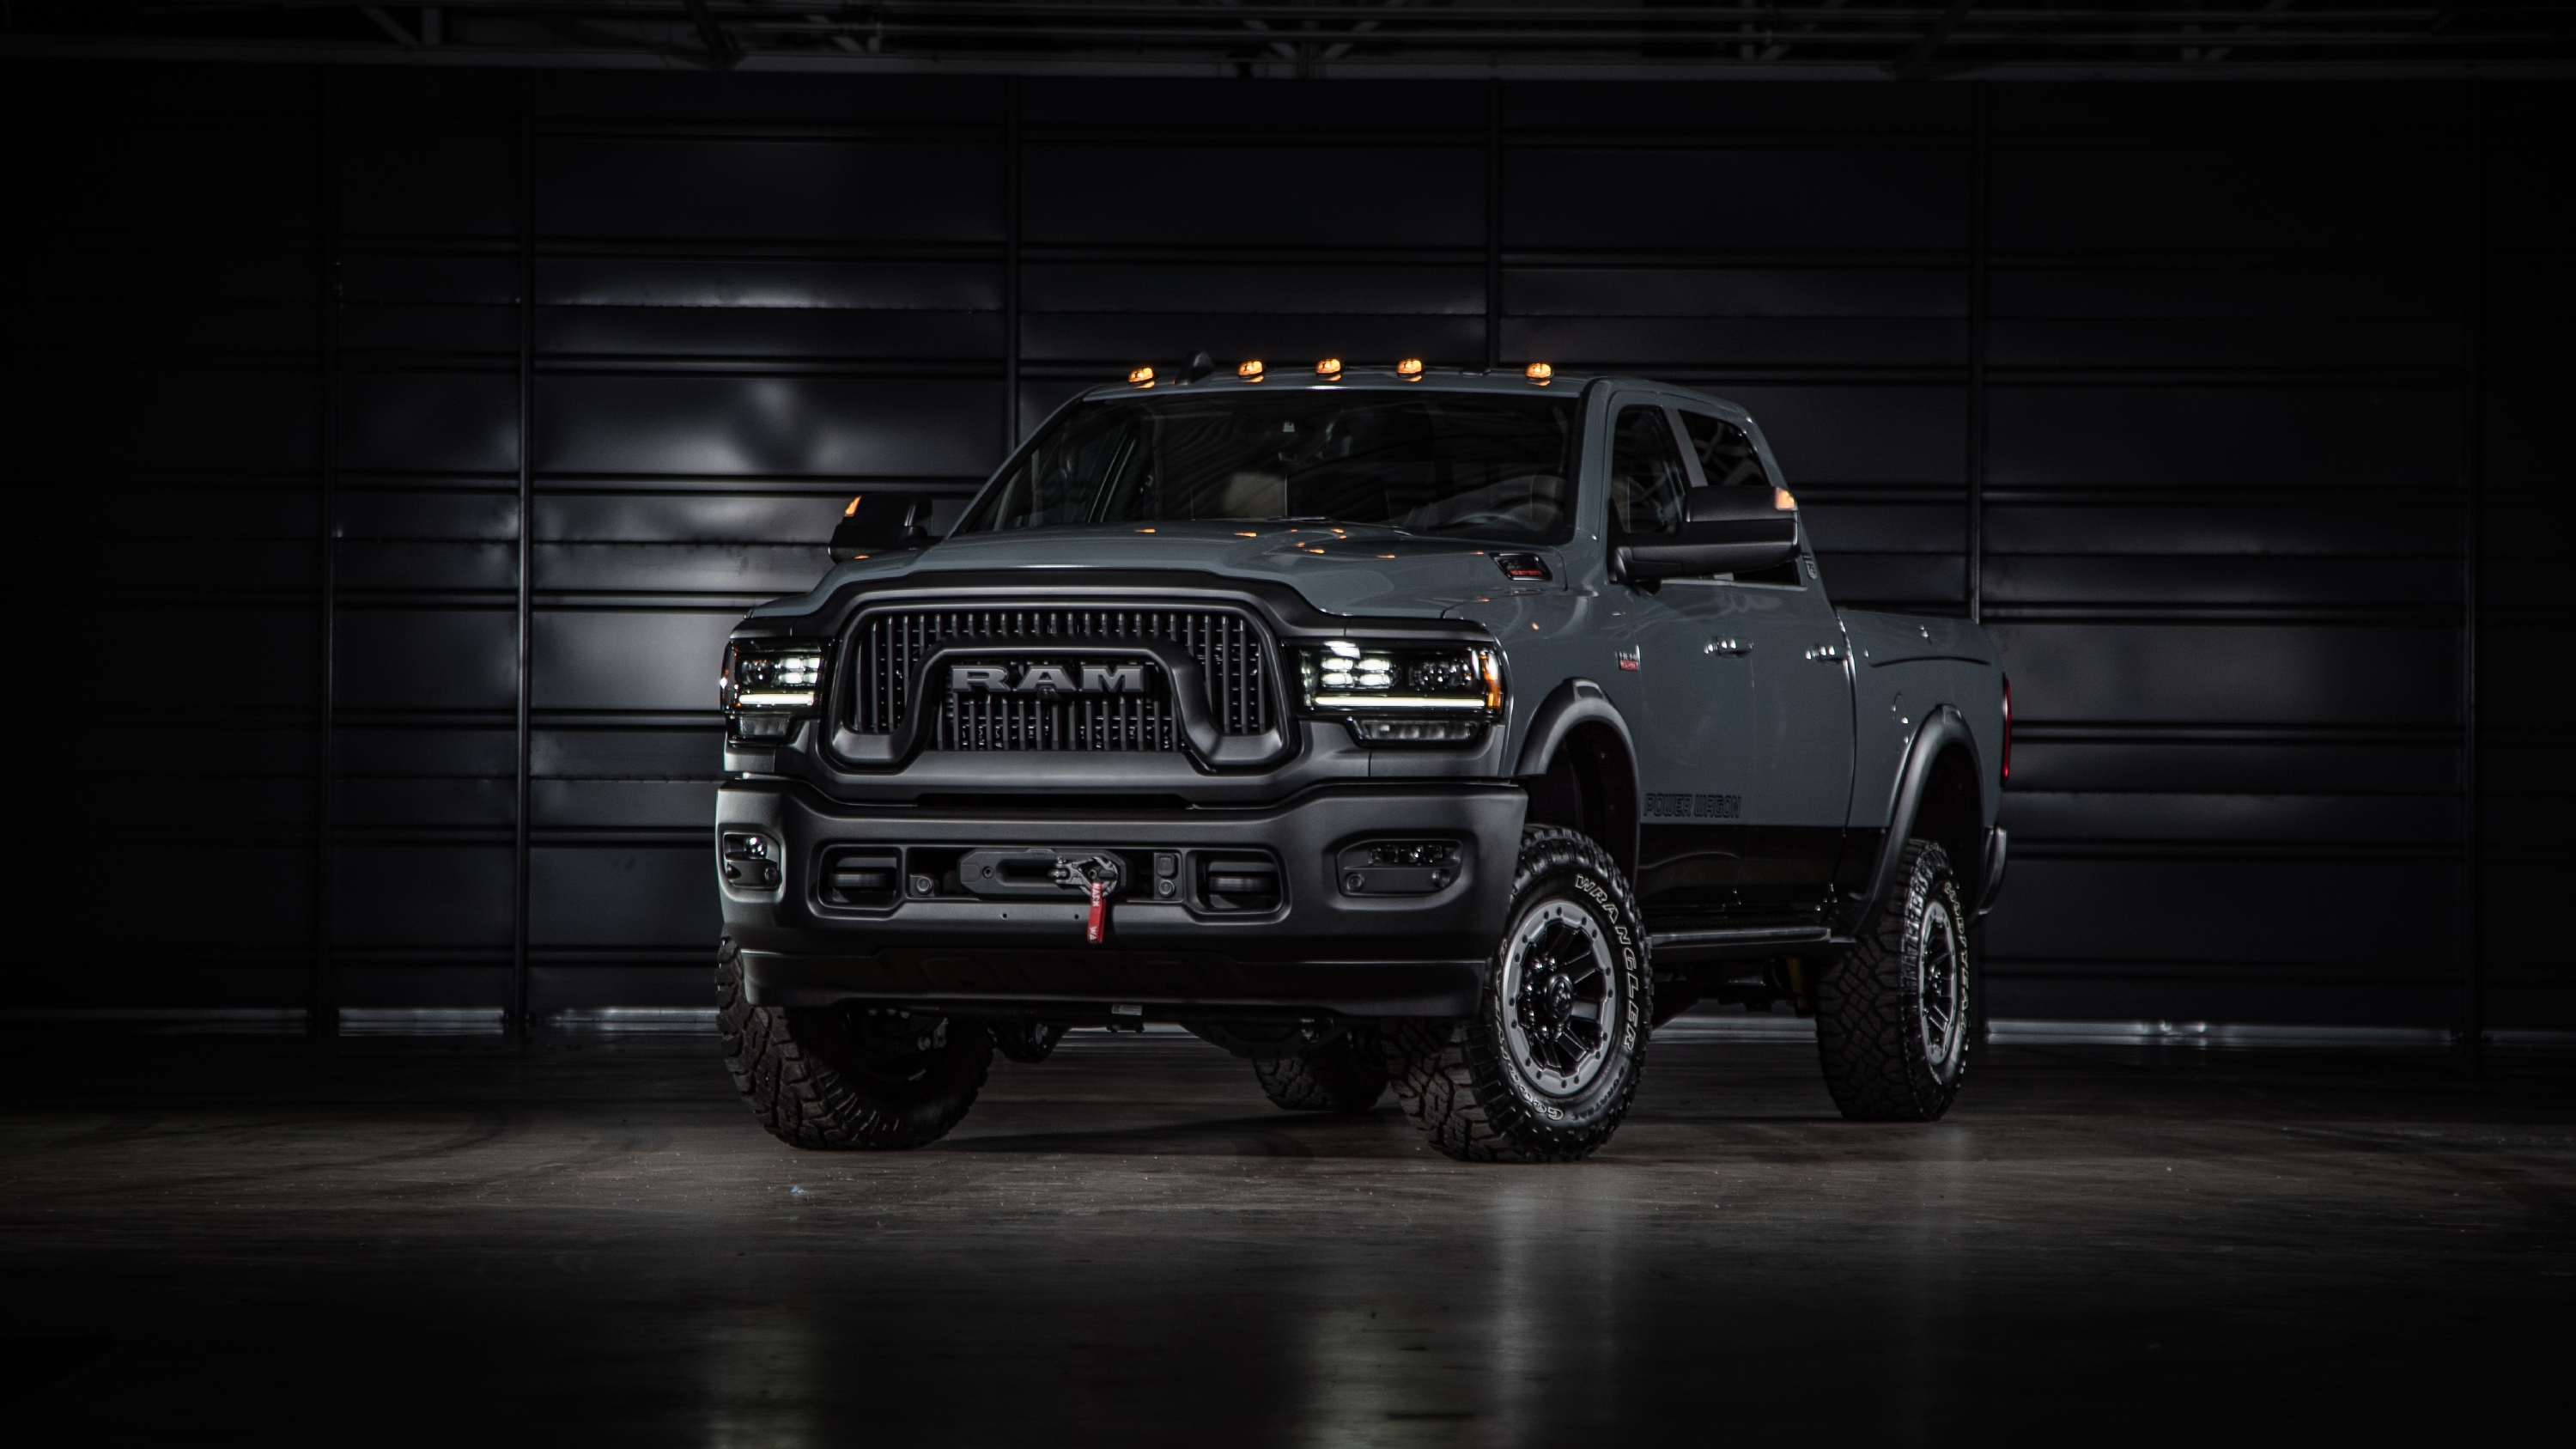 What's the Ram 2500 Towing Capacity?